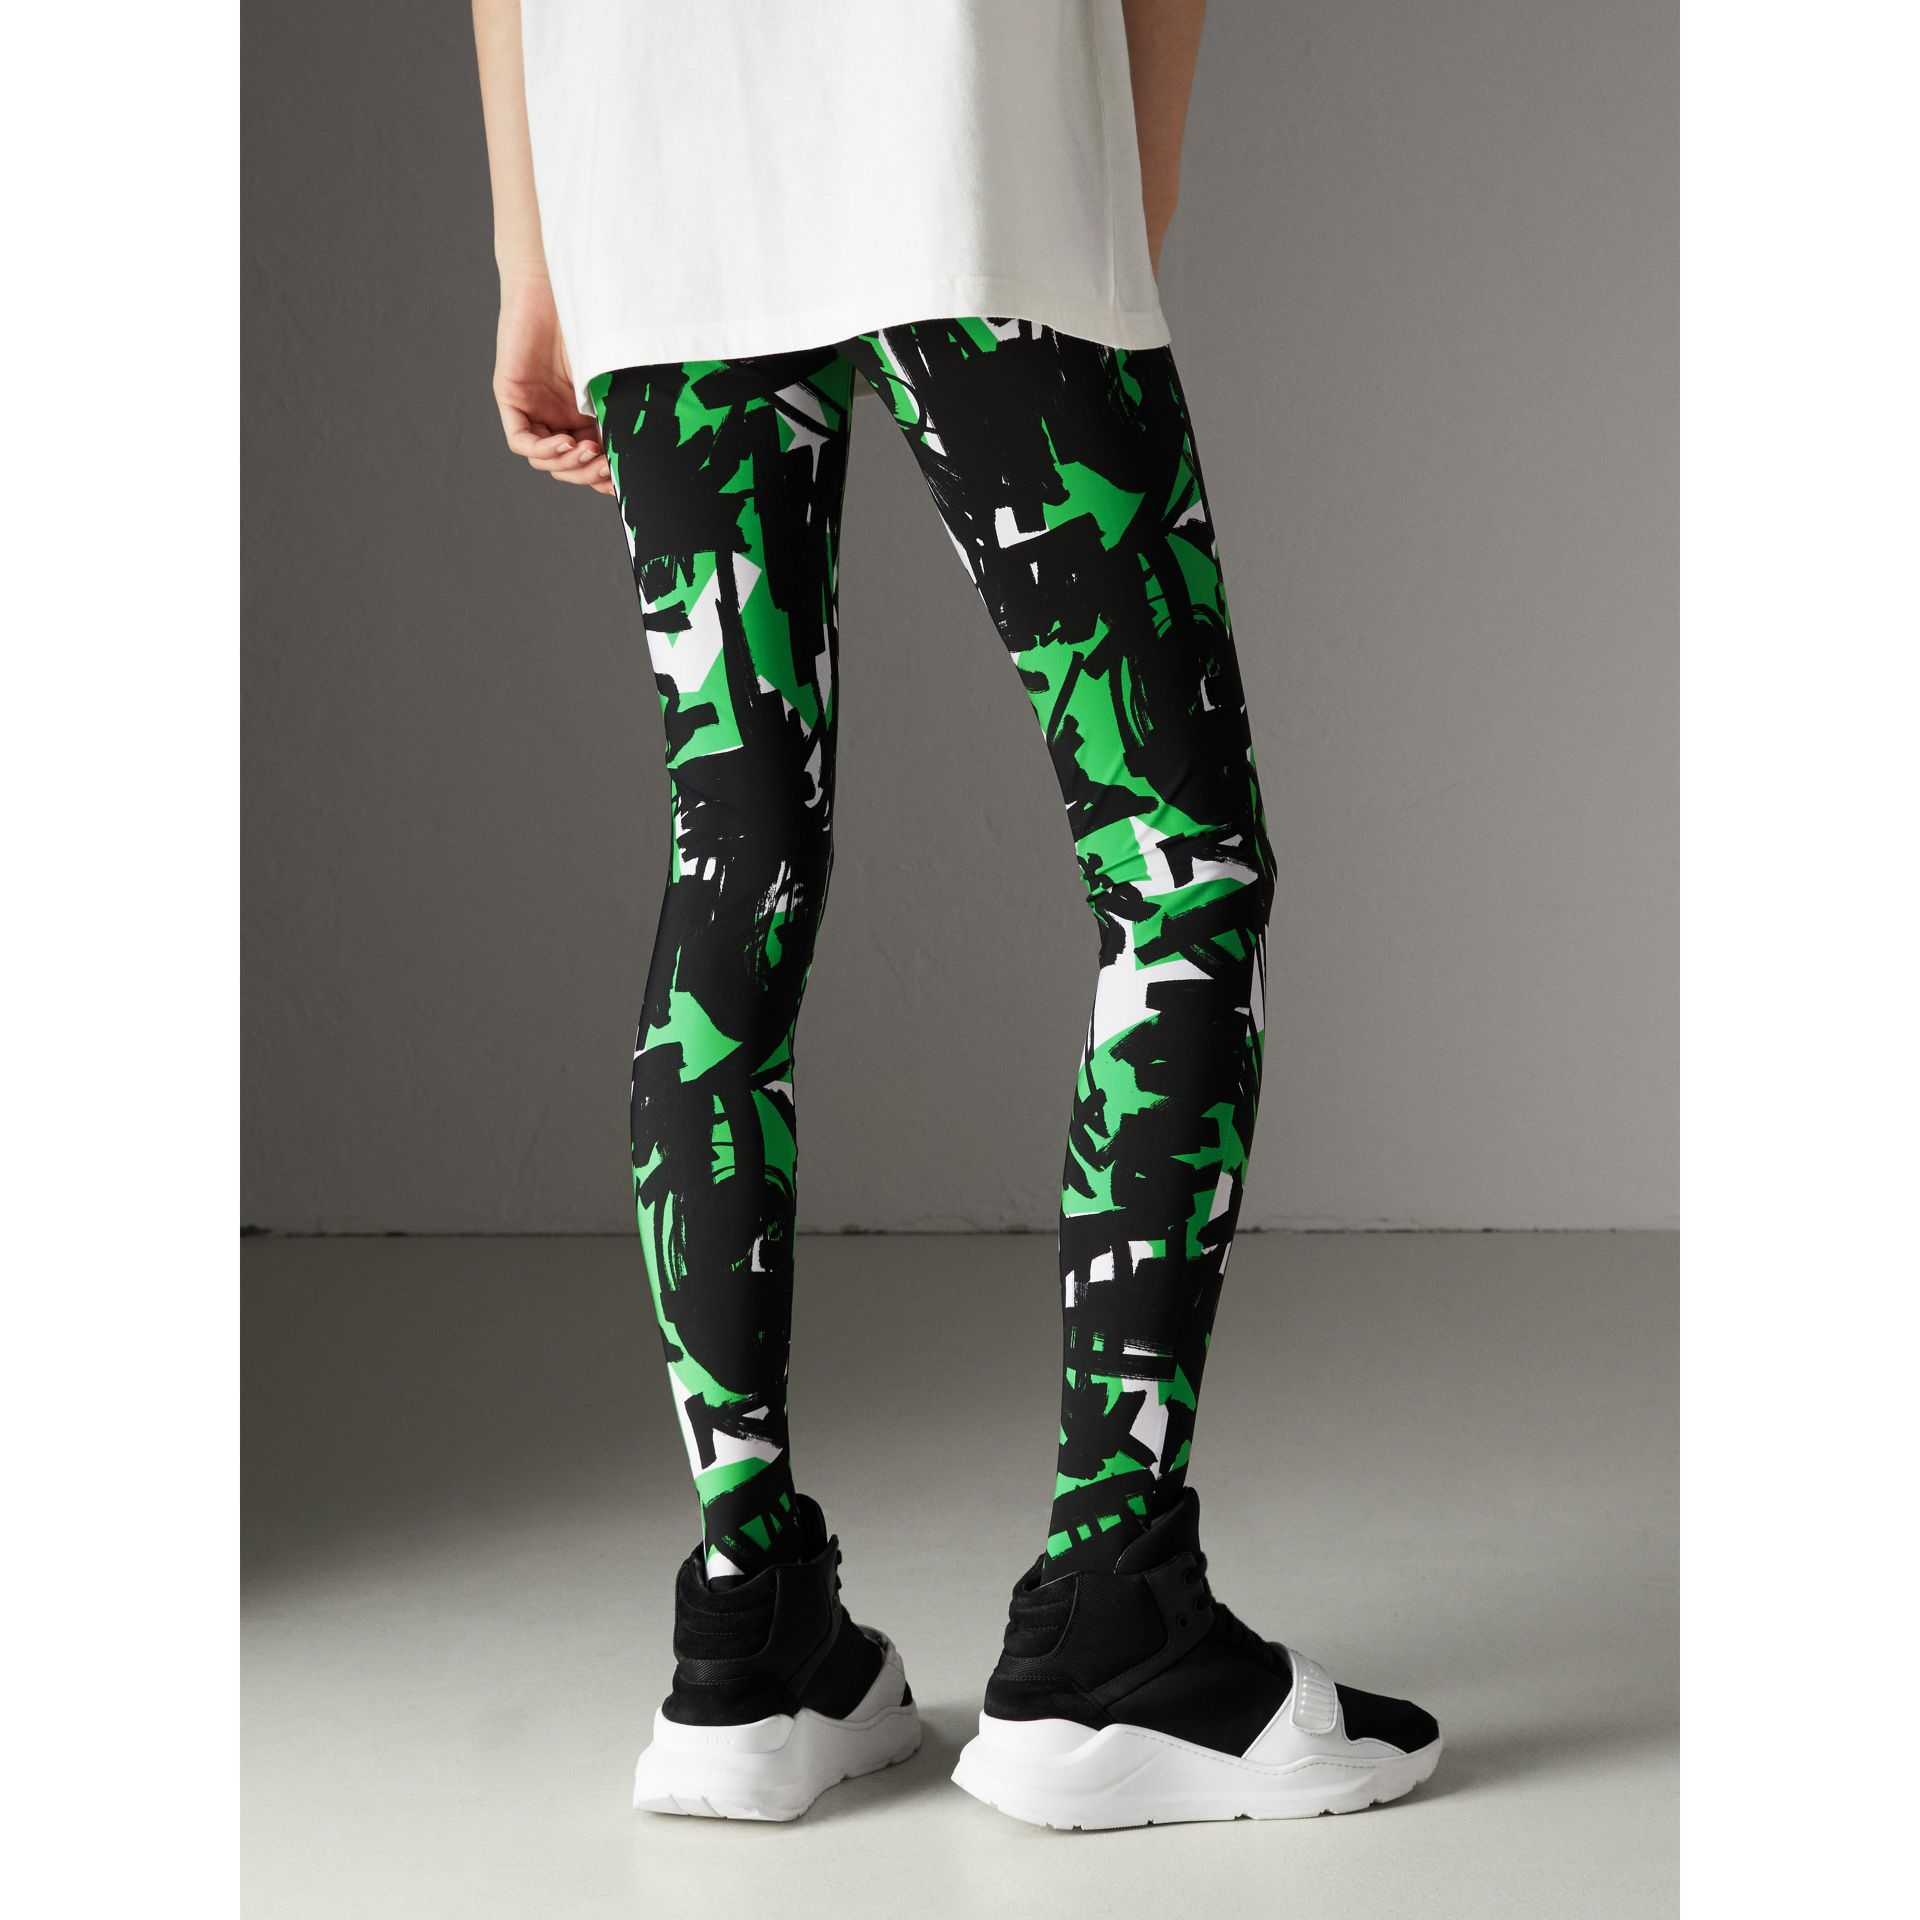 Graffiti Print Leggings in Neon Green - Women | Burberry - gallery image 2